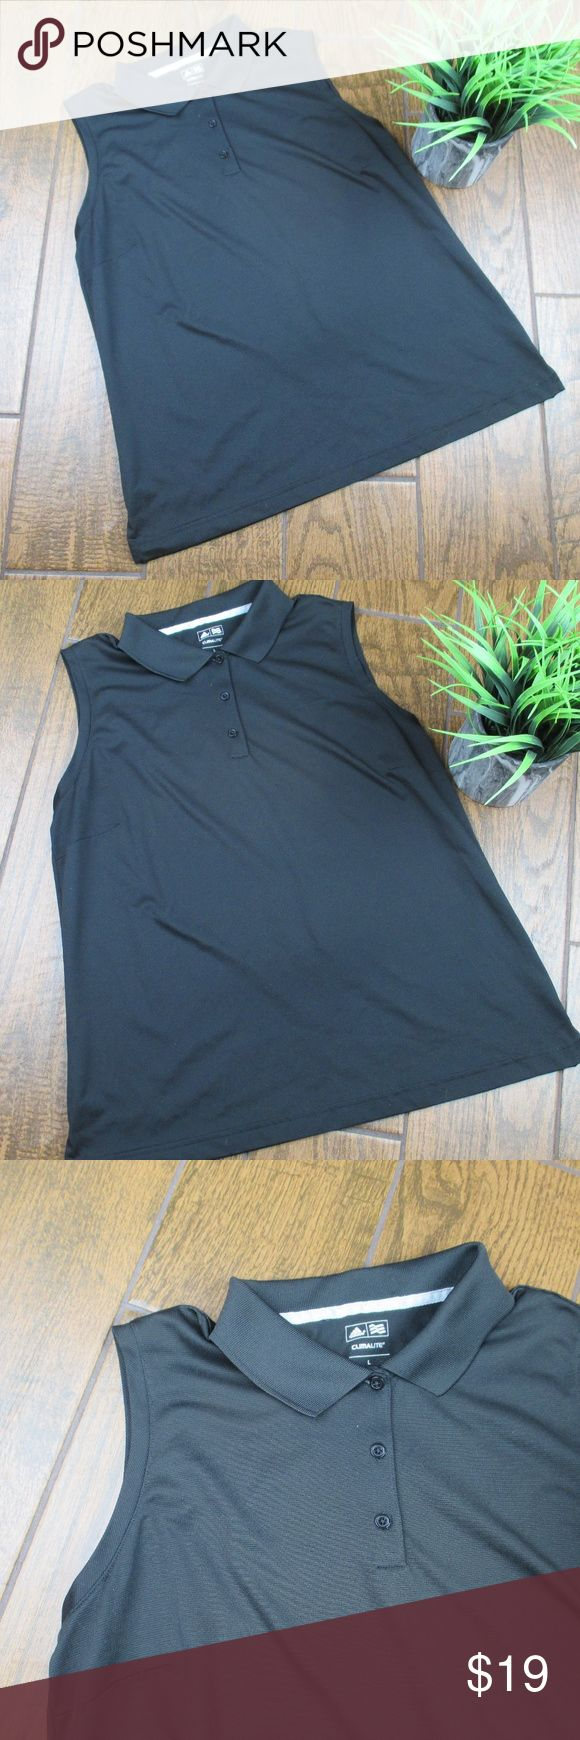 Large Adidas ClimaLite Sleeveless Polo Black Adidas ClimaLite Athletic Tank Top Polo Shirt Black Size Large Preowned but in excellent condition Super stretchy Bust from pit to pit is 22 inches Length is 26 inches  OFFERS ACCEPTED Add to a bundle for an automatic discount  Colors may very due to lighting, seller does its best to portray the right color. Please inspect all photos.  #Q016 adidas Tops Tank Tops